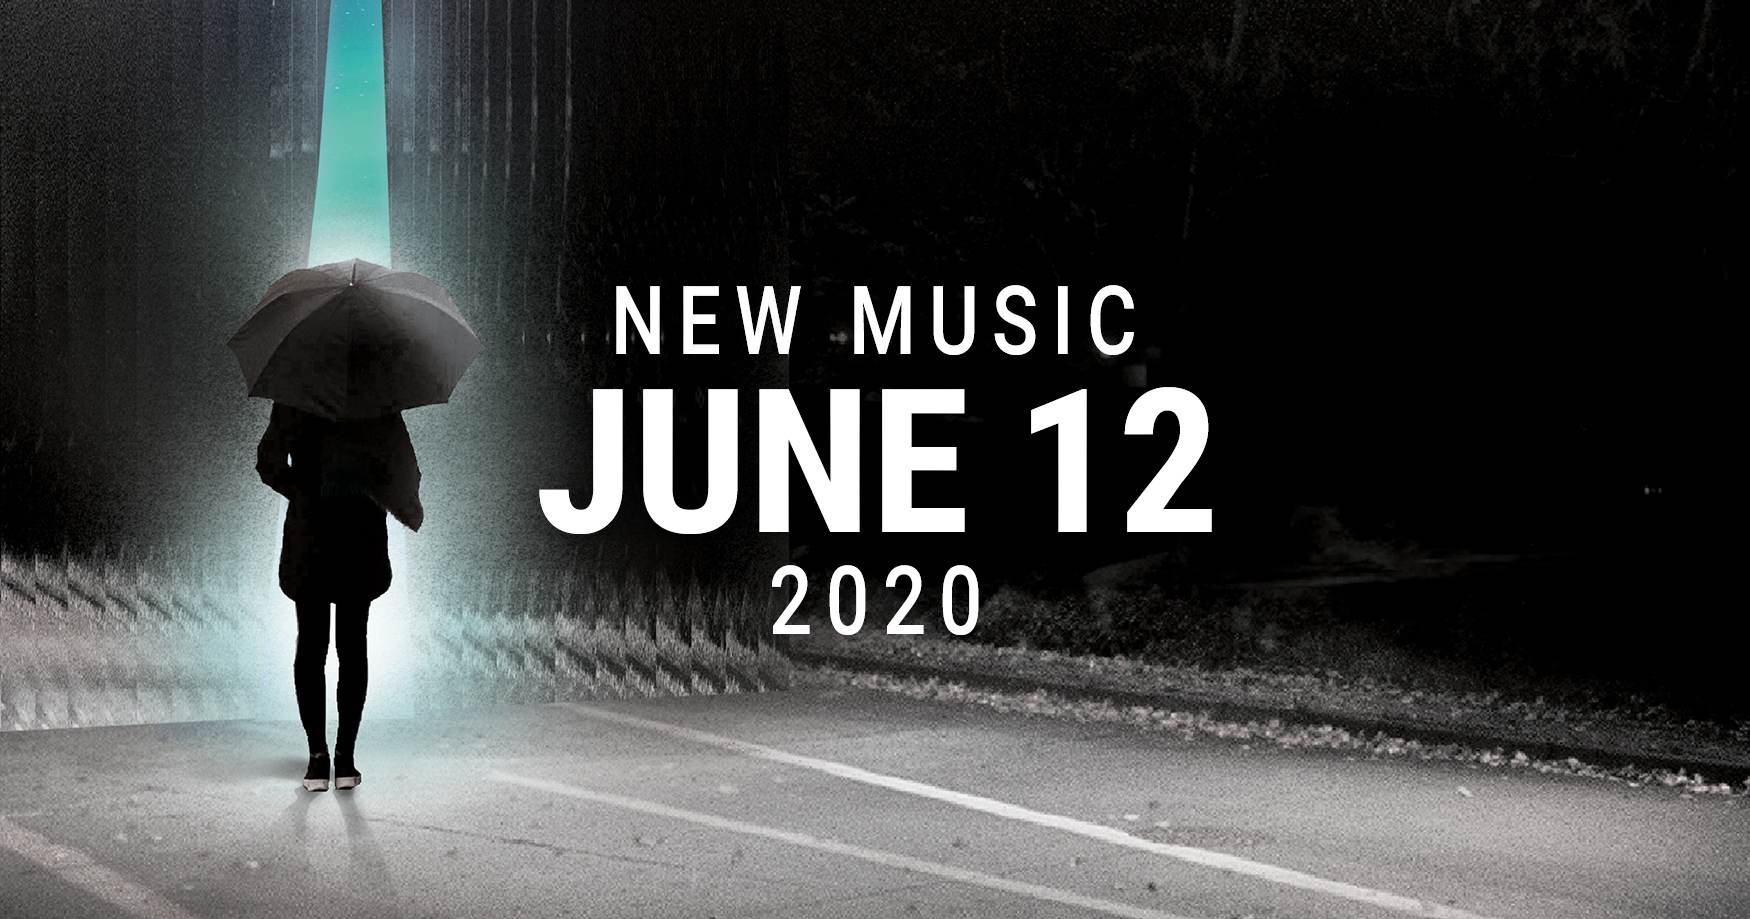 New Music June 12 2020